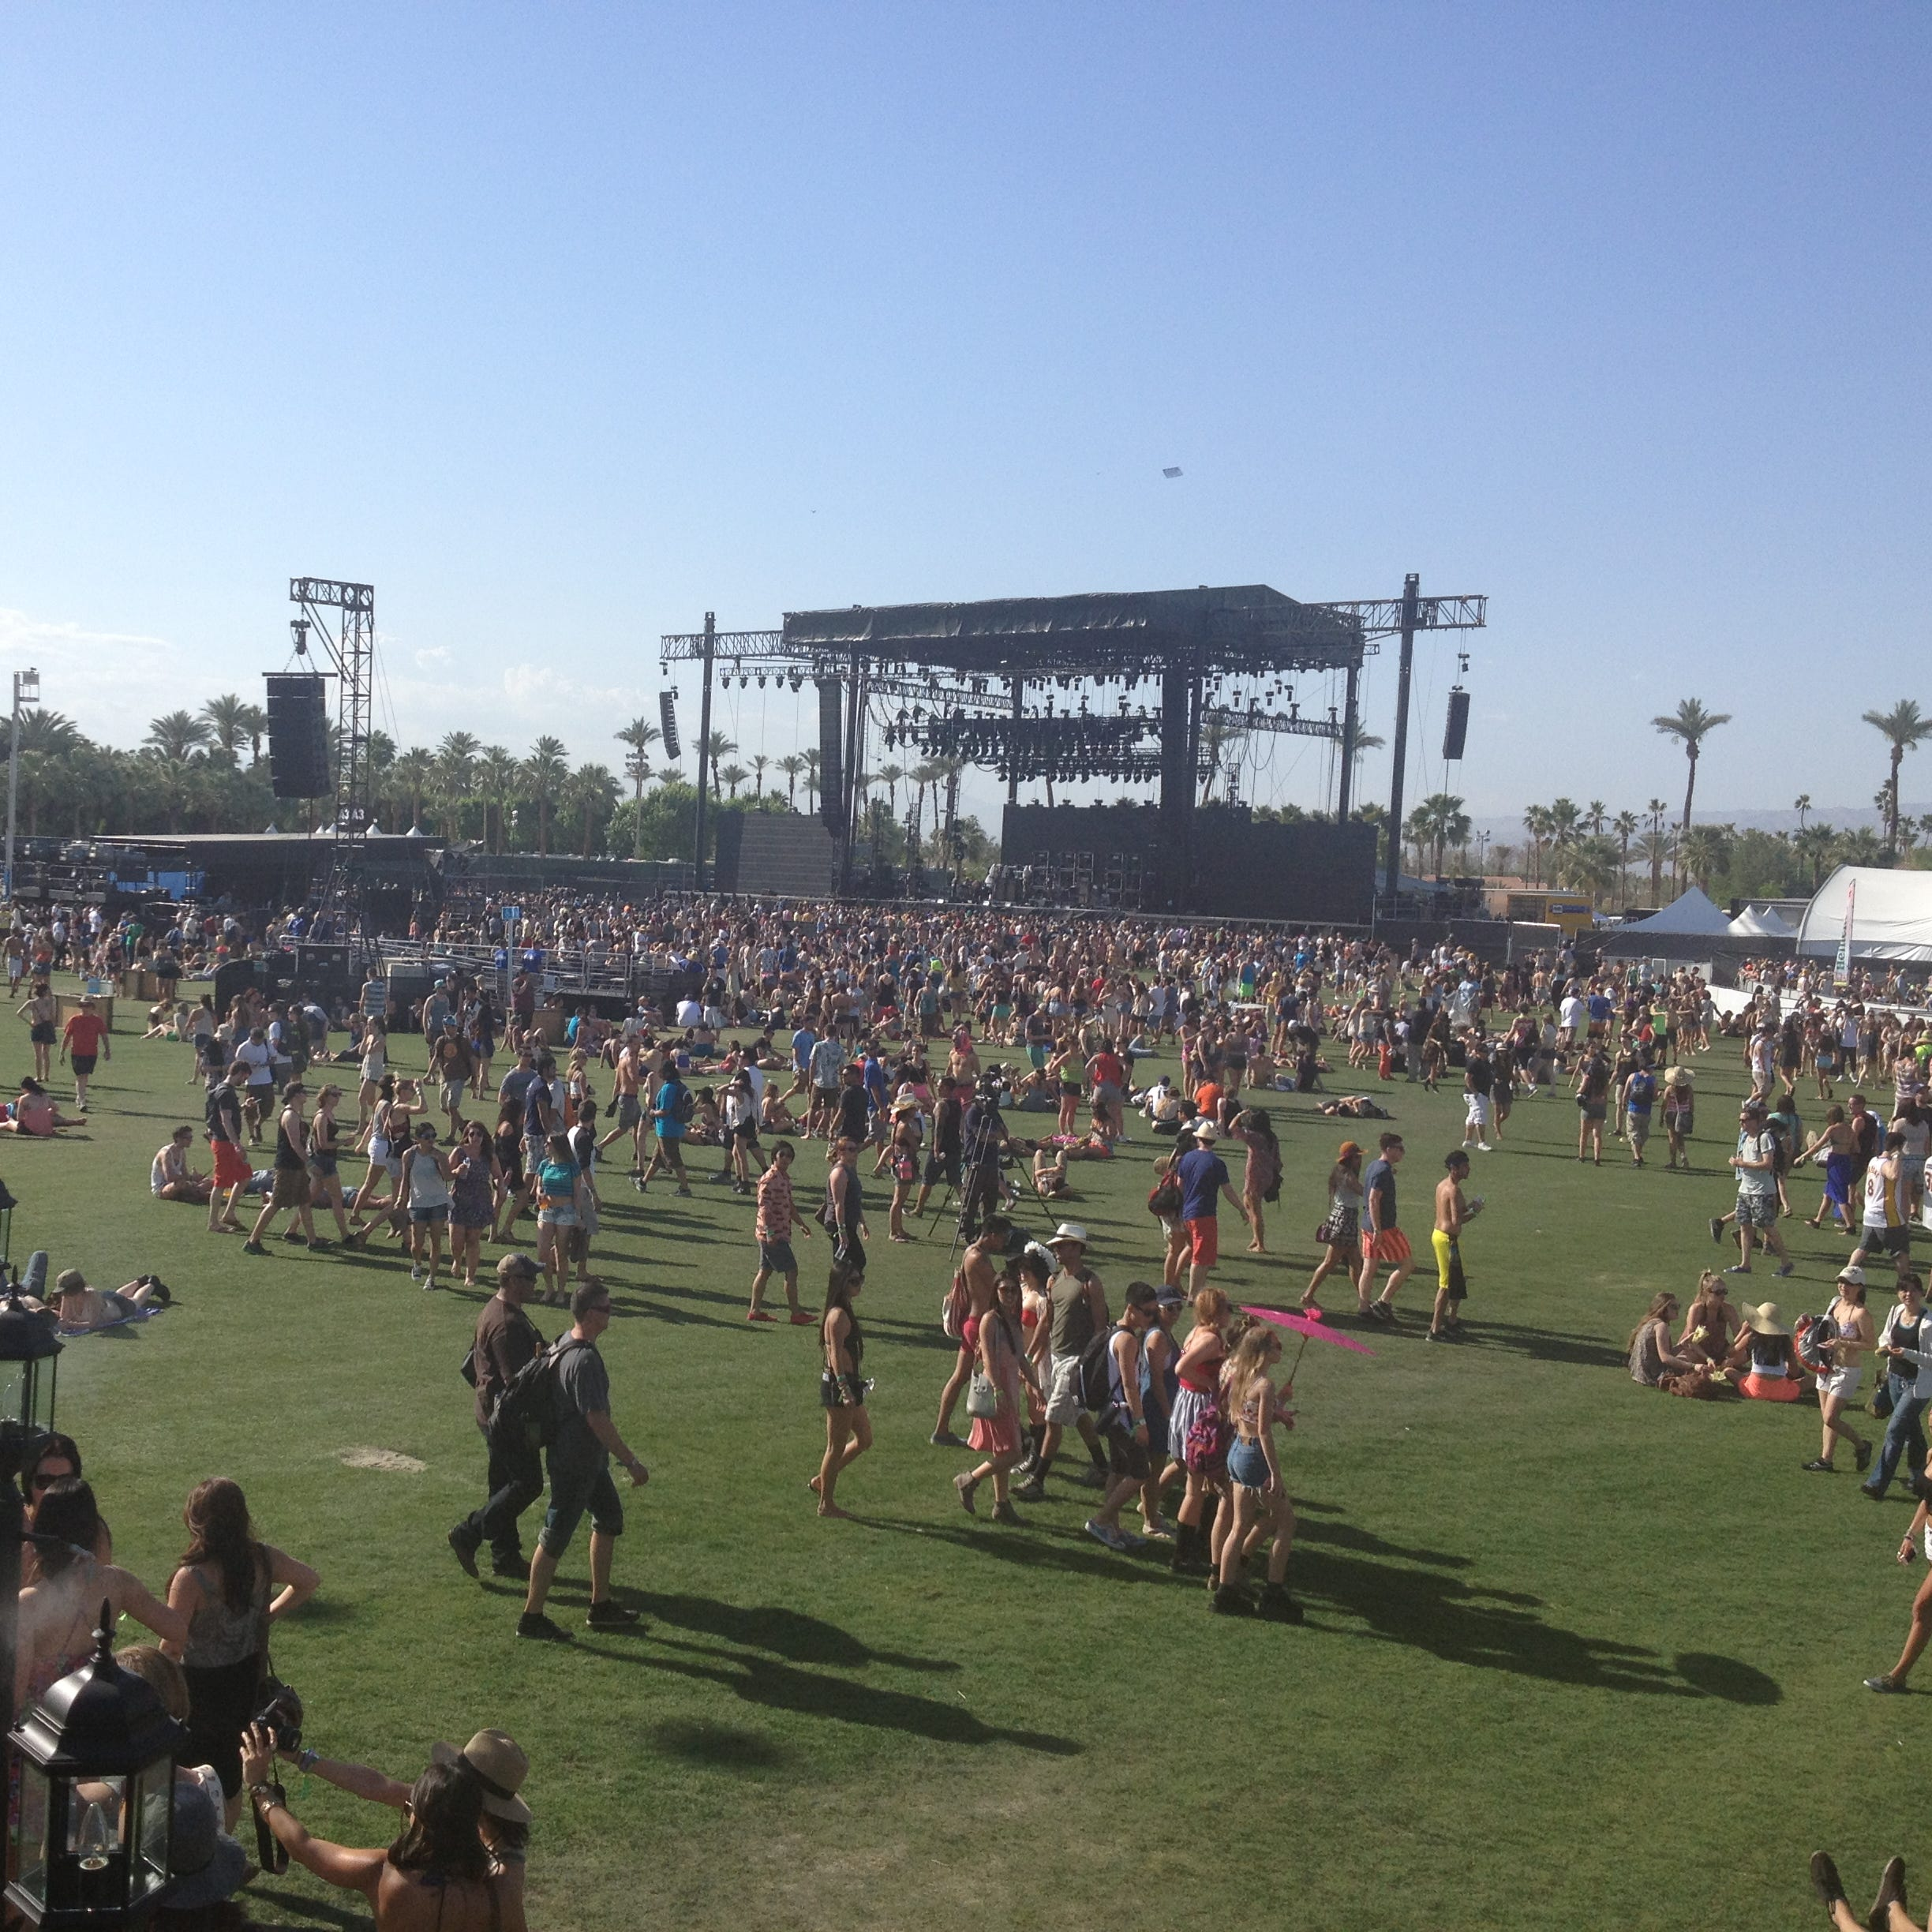 Traffic to Coachella music fest clears up along I-10 though congestion remains near venue